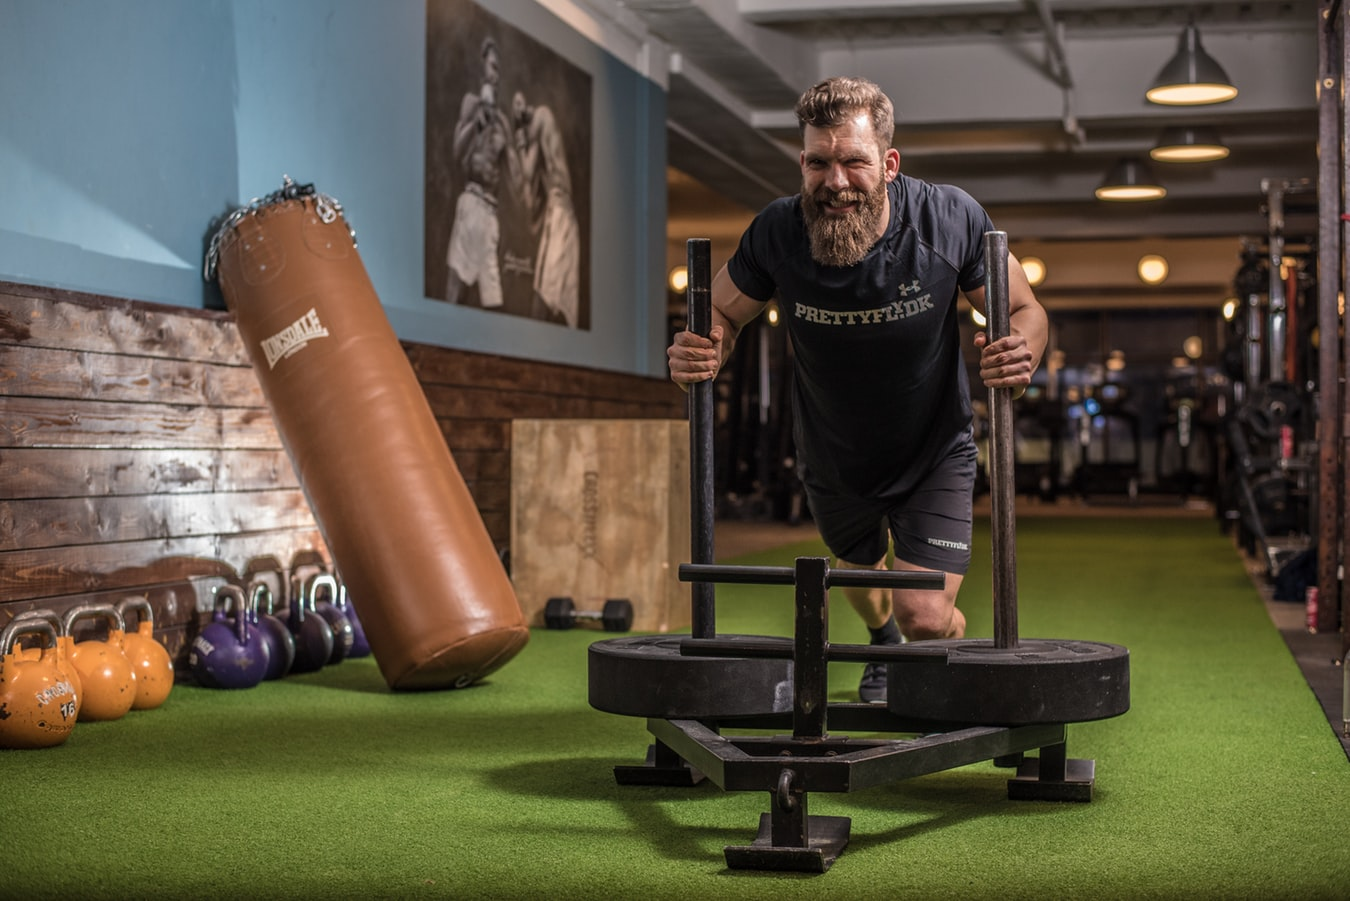 Man pushing prowler as part of strength and conditioning workout